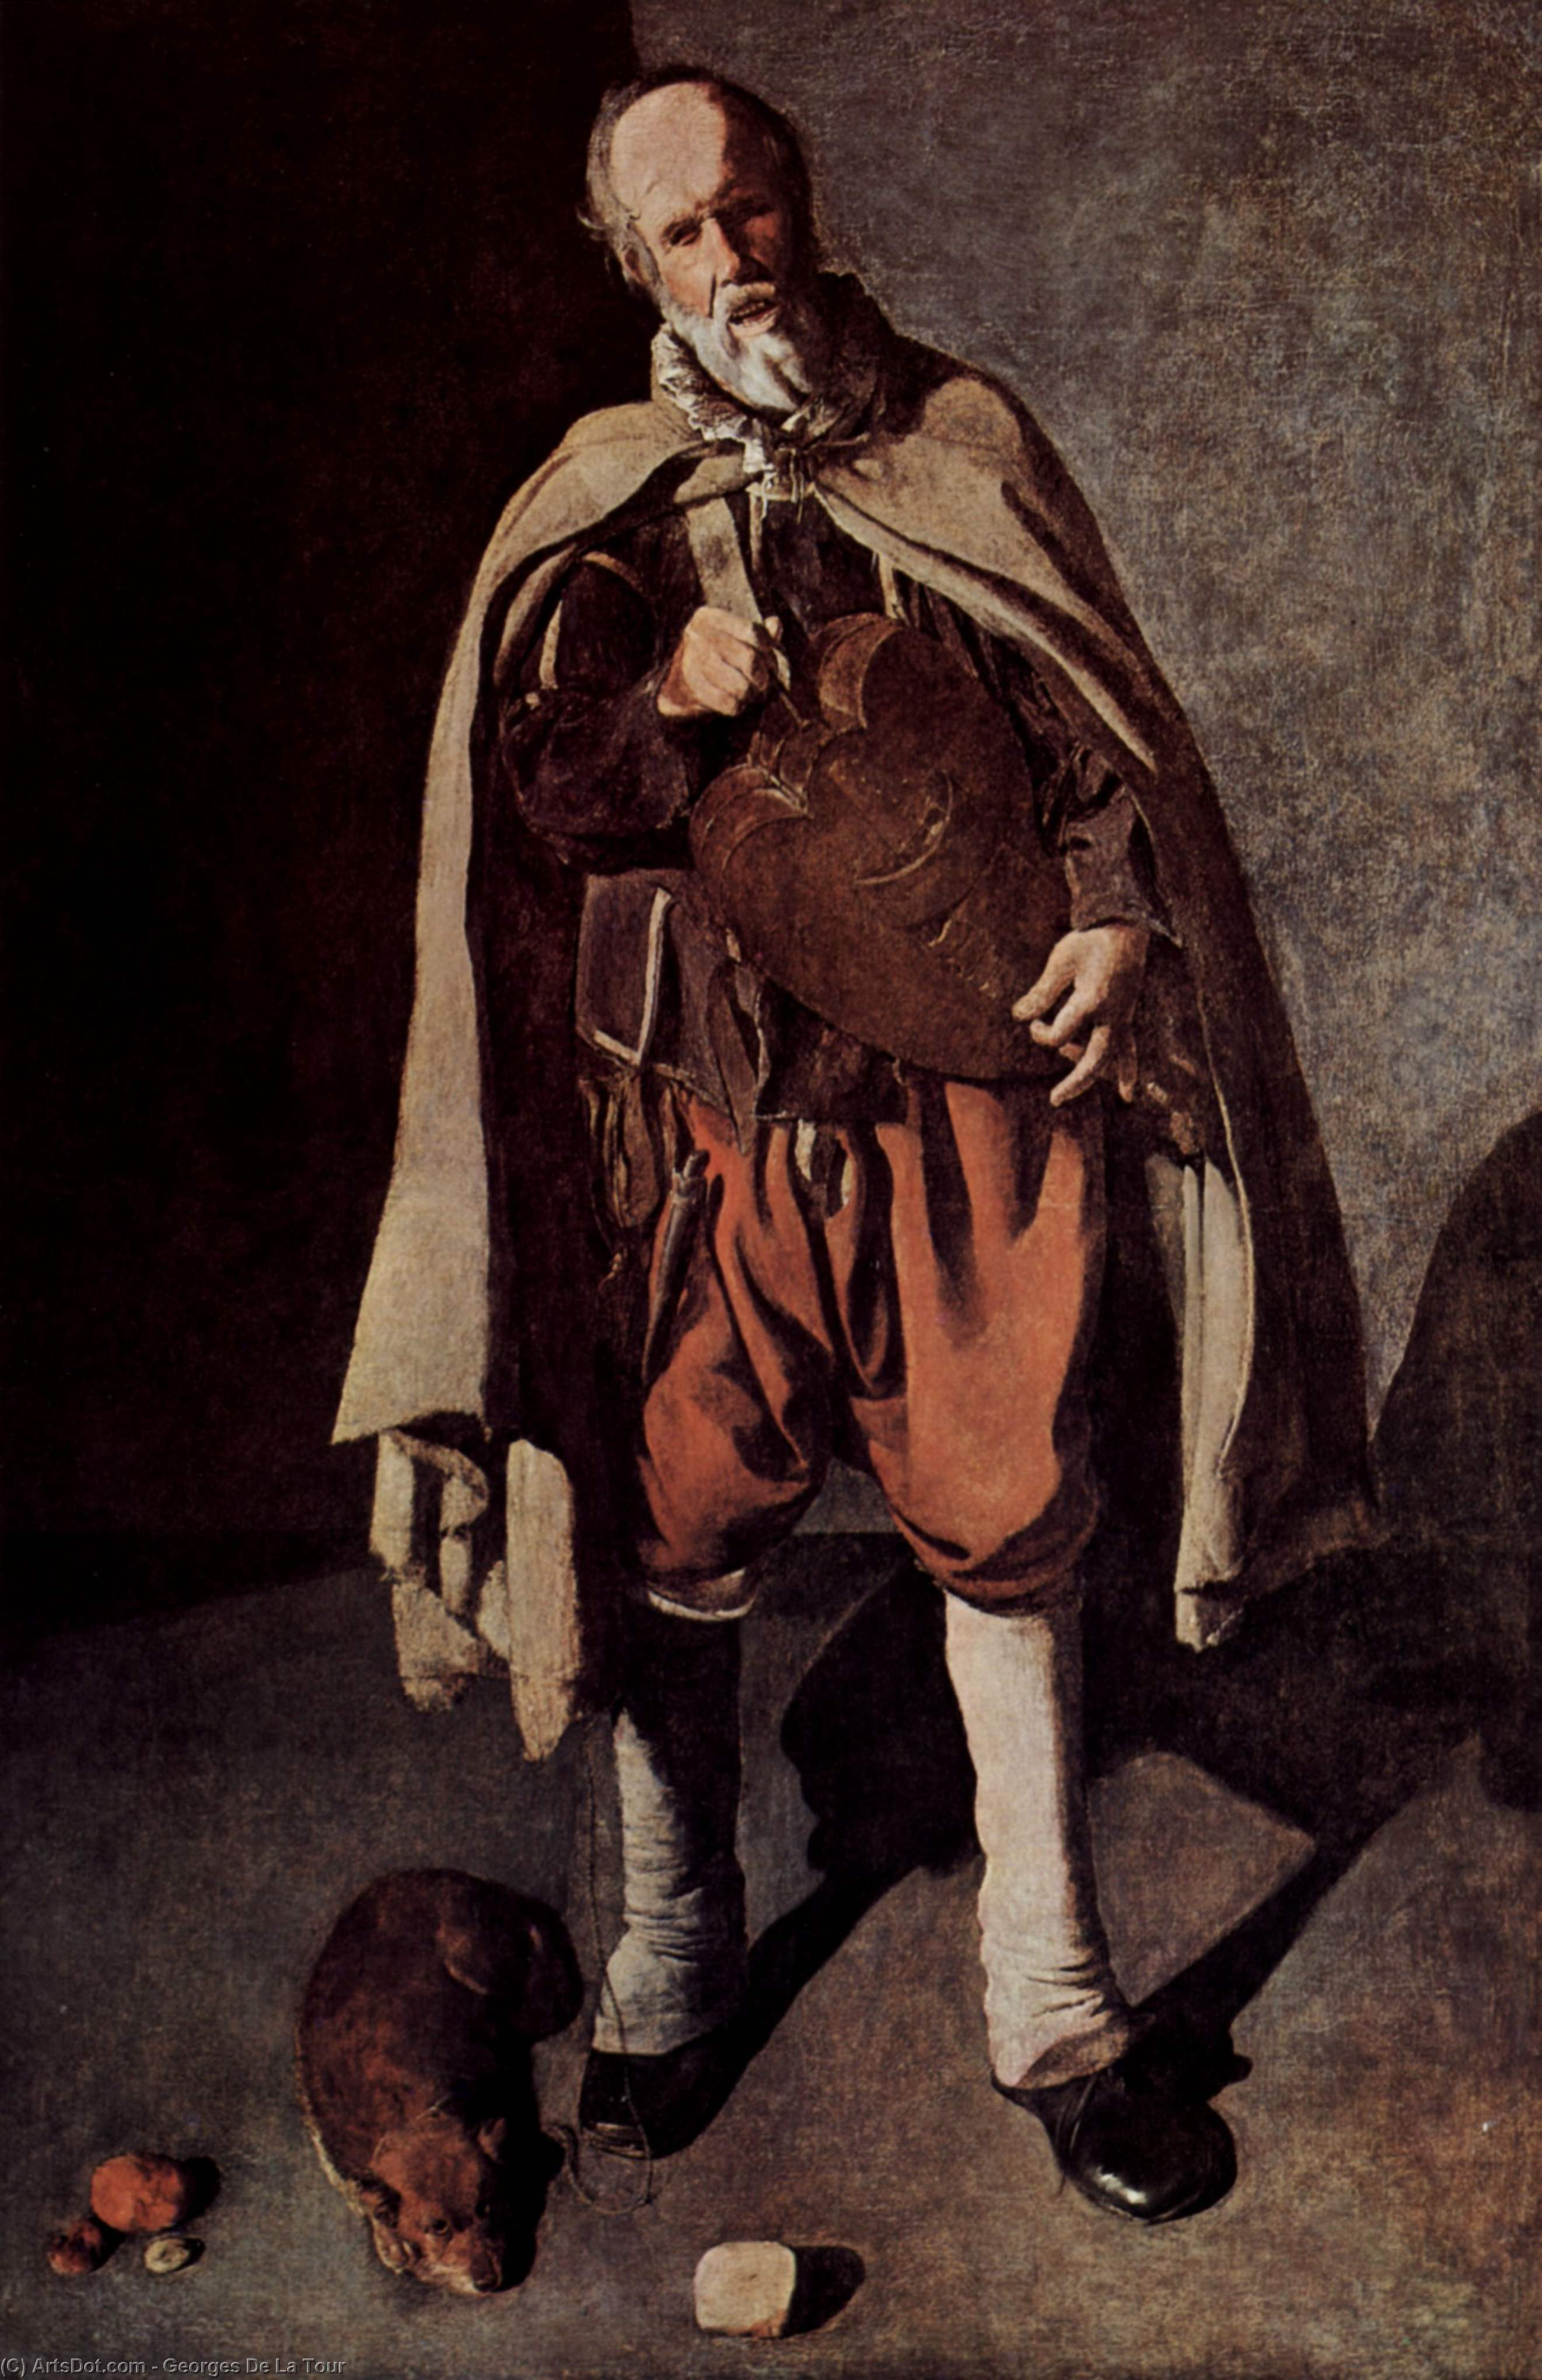 Wikioo.org - The Encyclopedia of Fine Arts - Painting, Artwork by Georges De La Tour - The Hurdy-Gurdy Player with a Dog